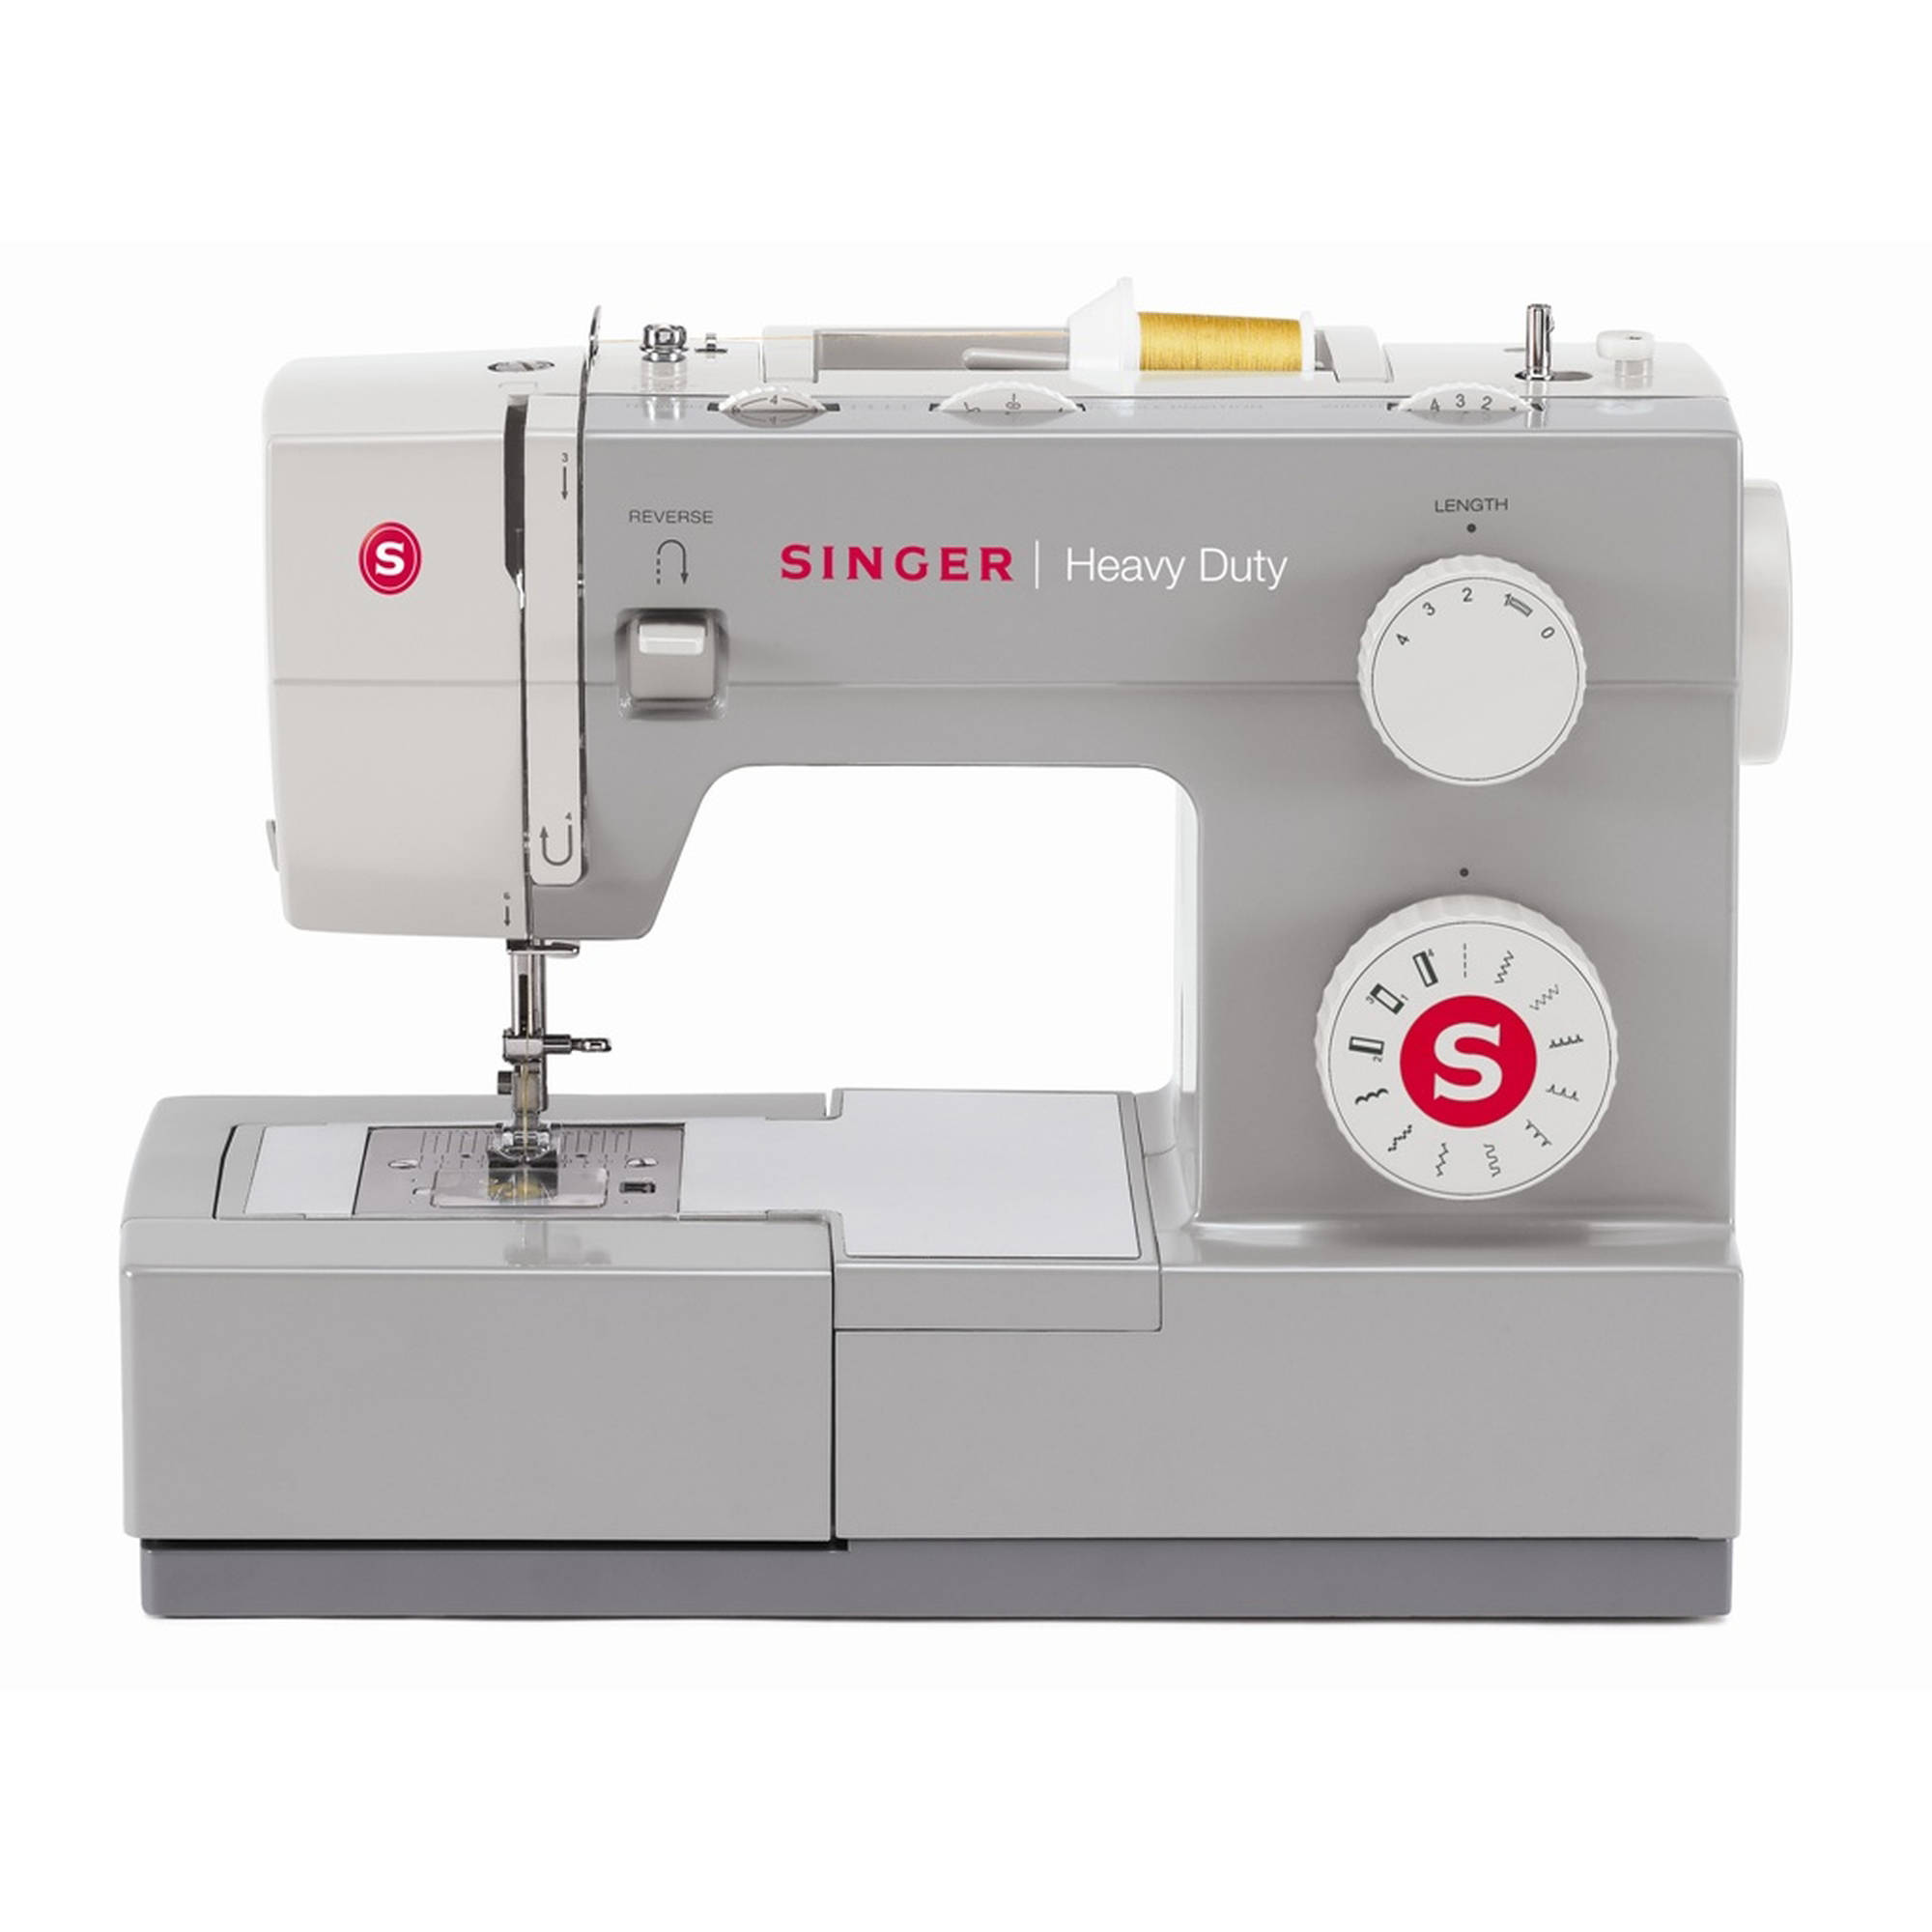 SINGER 4411 Heavy Duty 11-Stitch Sewing Machine